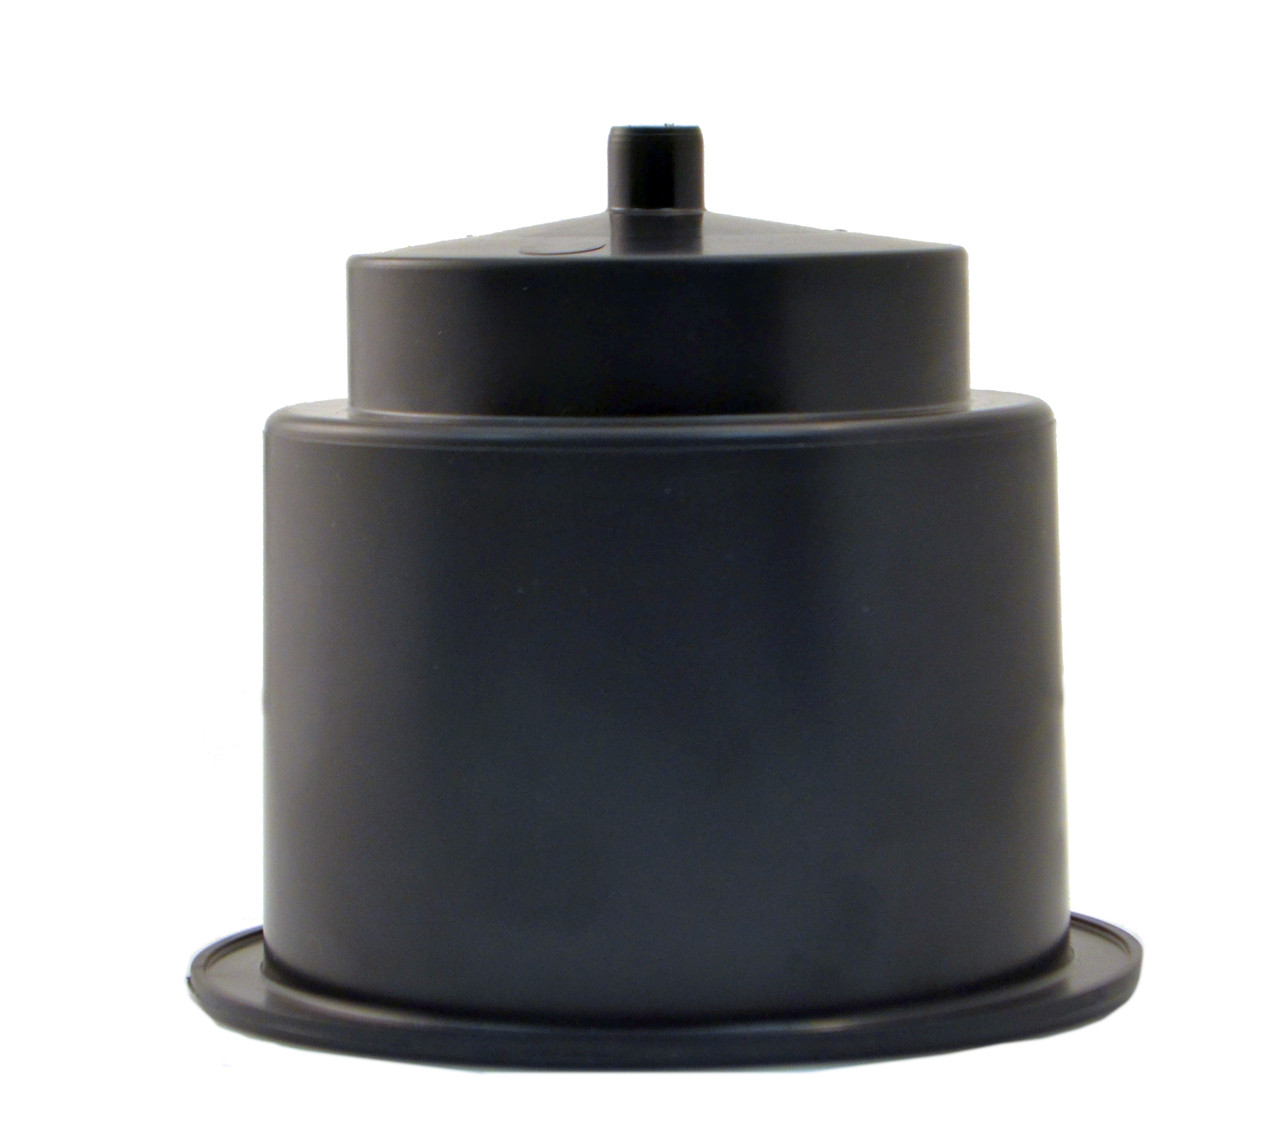 """Brand new replacement flush mount plastic cup holder with a single drain spigot. Ideal for installation in tables, chairs, outdoor seating, and private theaters. Its large drain hole can be used with tubing to direct spills and condensation without pooling up in either the cupholder or leaving puddles underneath the cup holder. These two-tiered cup holders can hold both bottles and cans. They have a 4-1/3"""" outside diameter,  a 3-1/2"""" inside diameter and are 3 3/8"""" tall. They need to be inset into a cavity between 3-3/5"""" and  4-1/4"""" in diameter."""